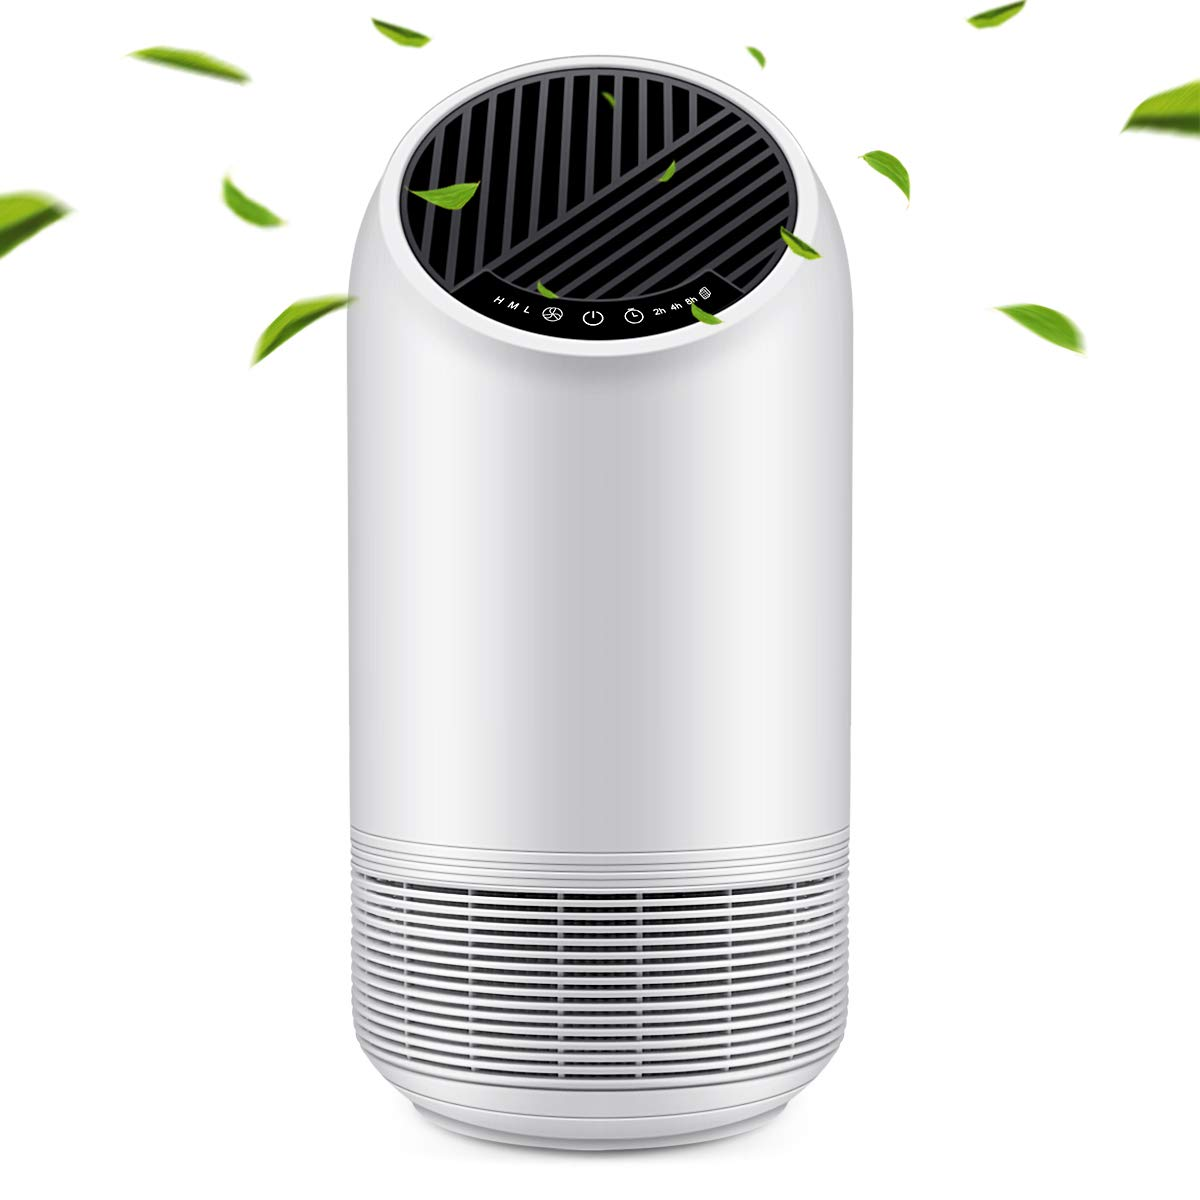 Air Purifier, Home Office Air Cleaner with True HEPA Filter for Allergies and Pets, Smokers, Pollen, Mold, Quiet Odor Eliminator